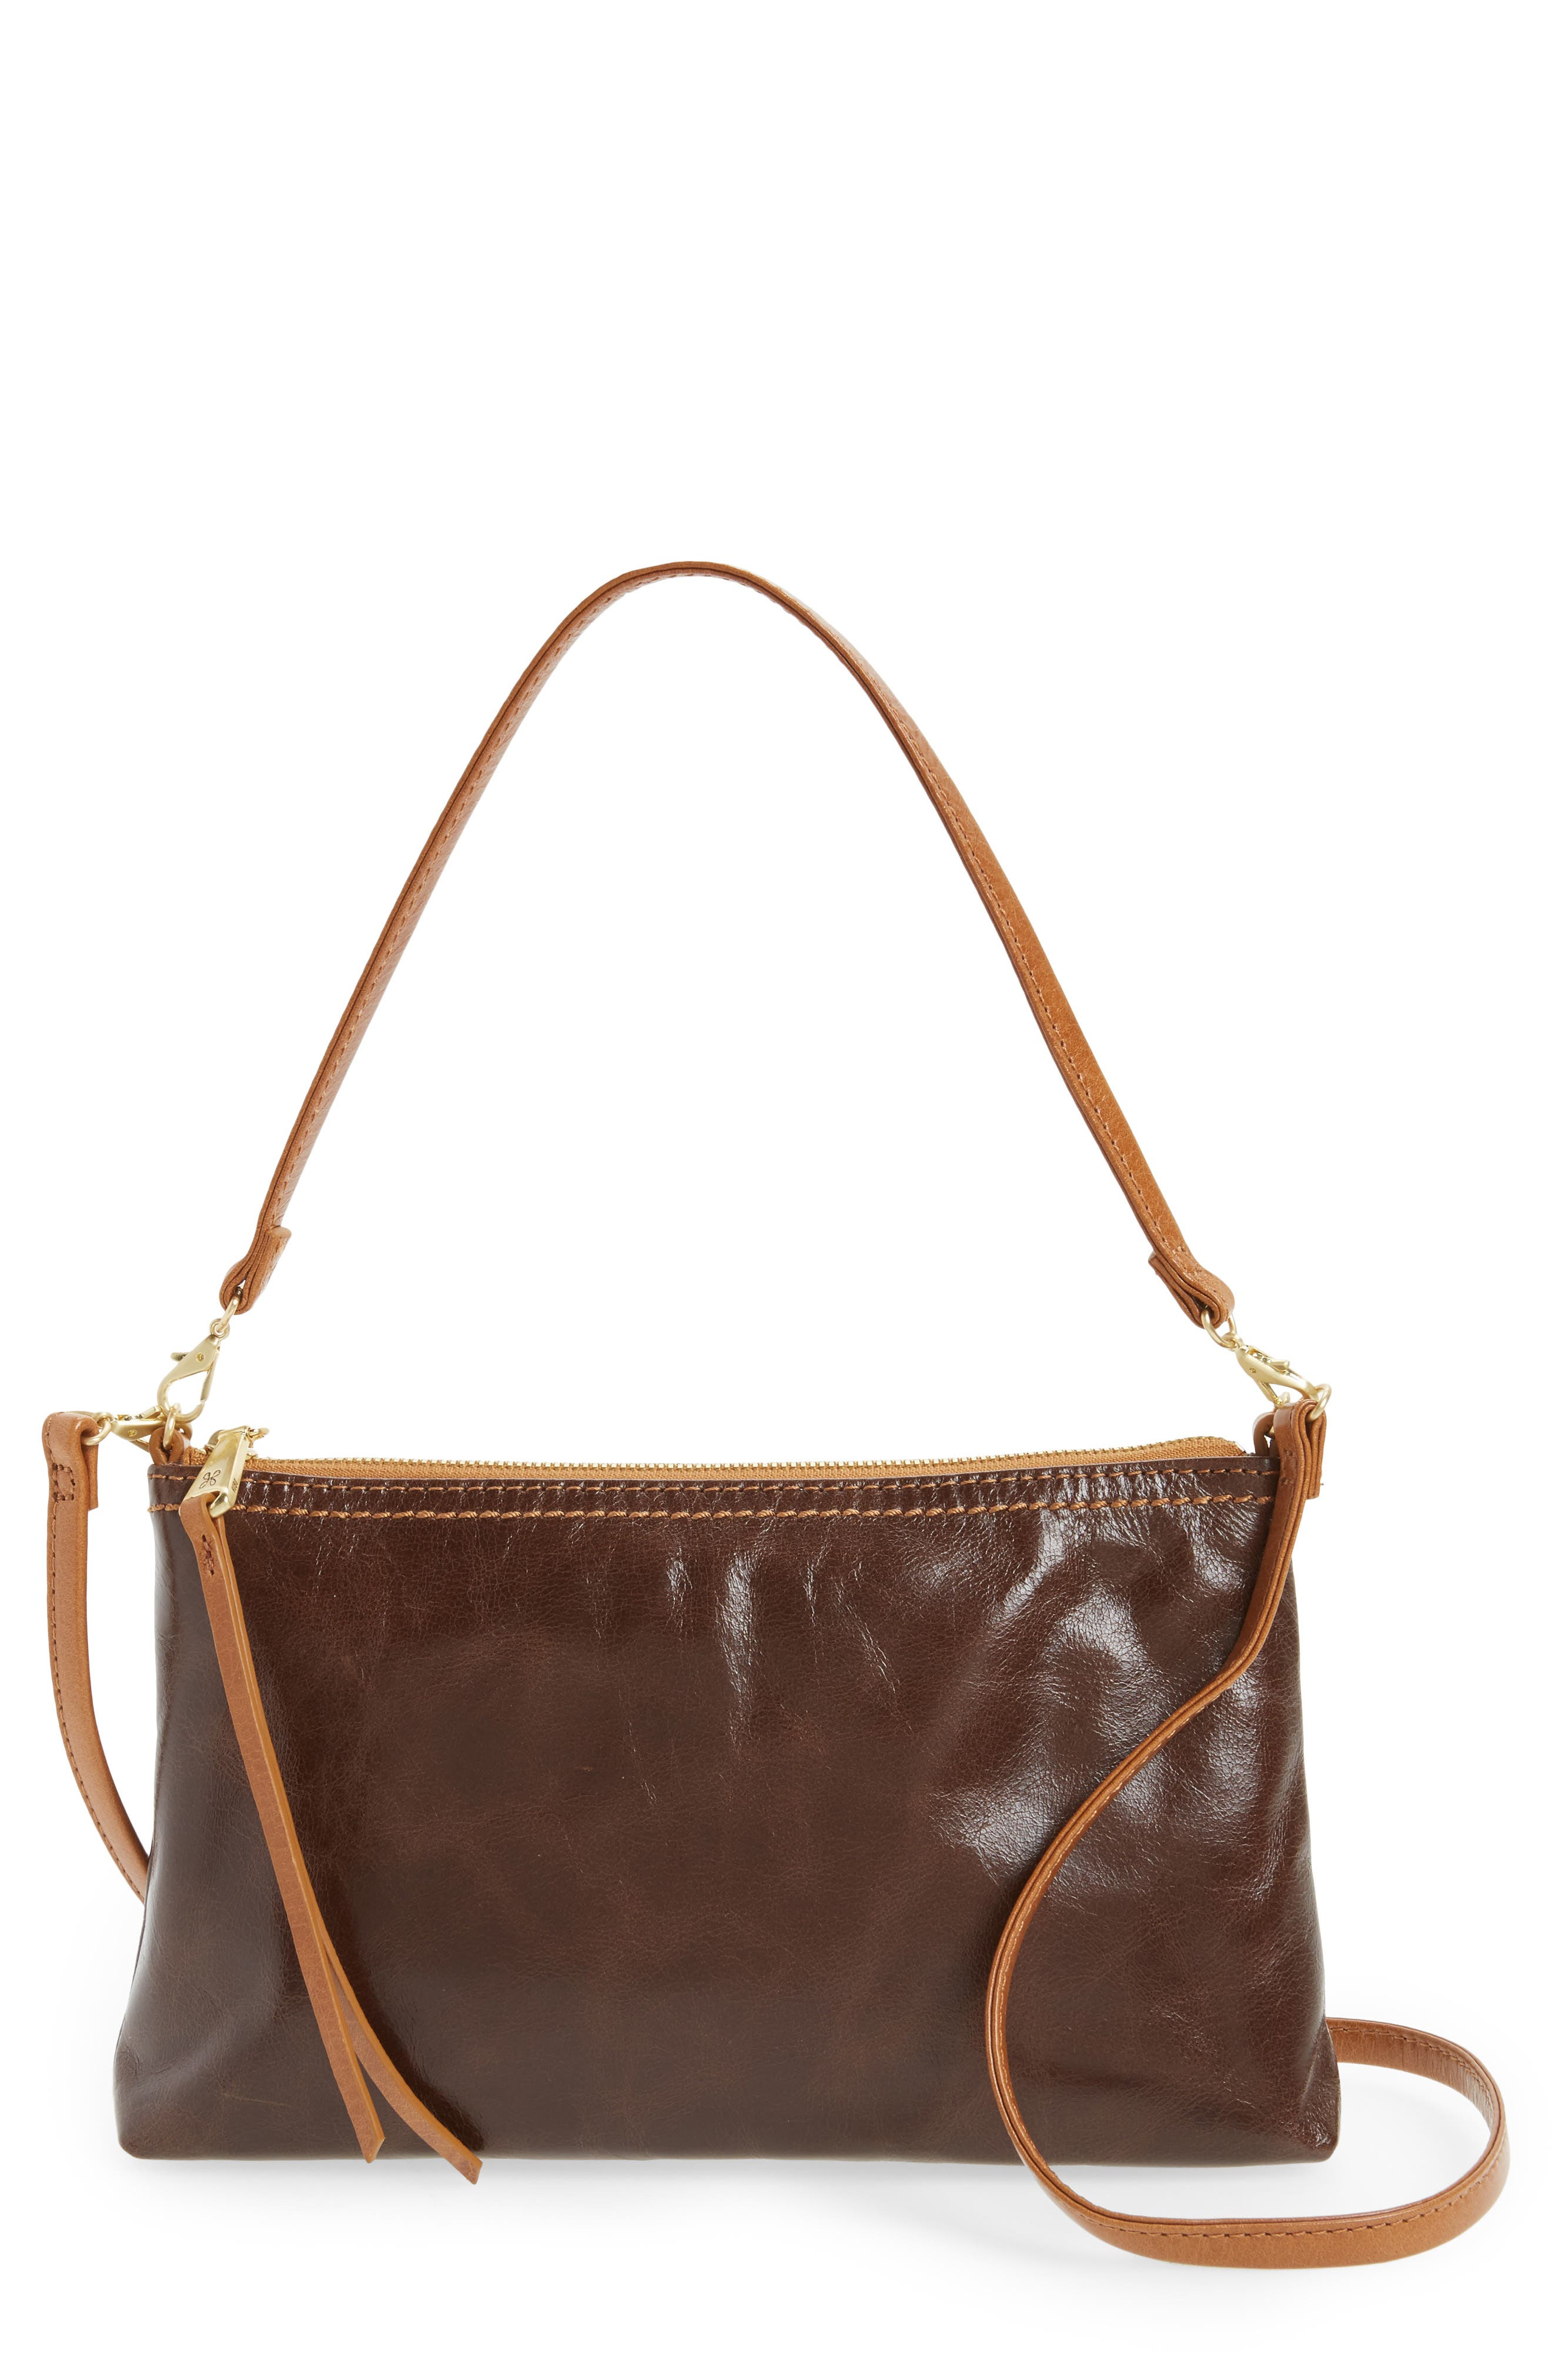 'Darcy' Leather Crossbody Bag,                             Main thumbnail 15, color,